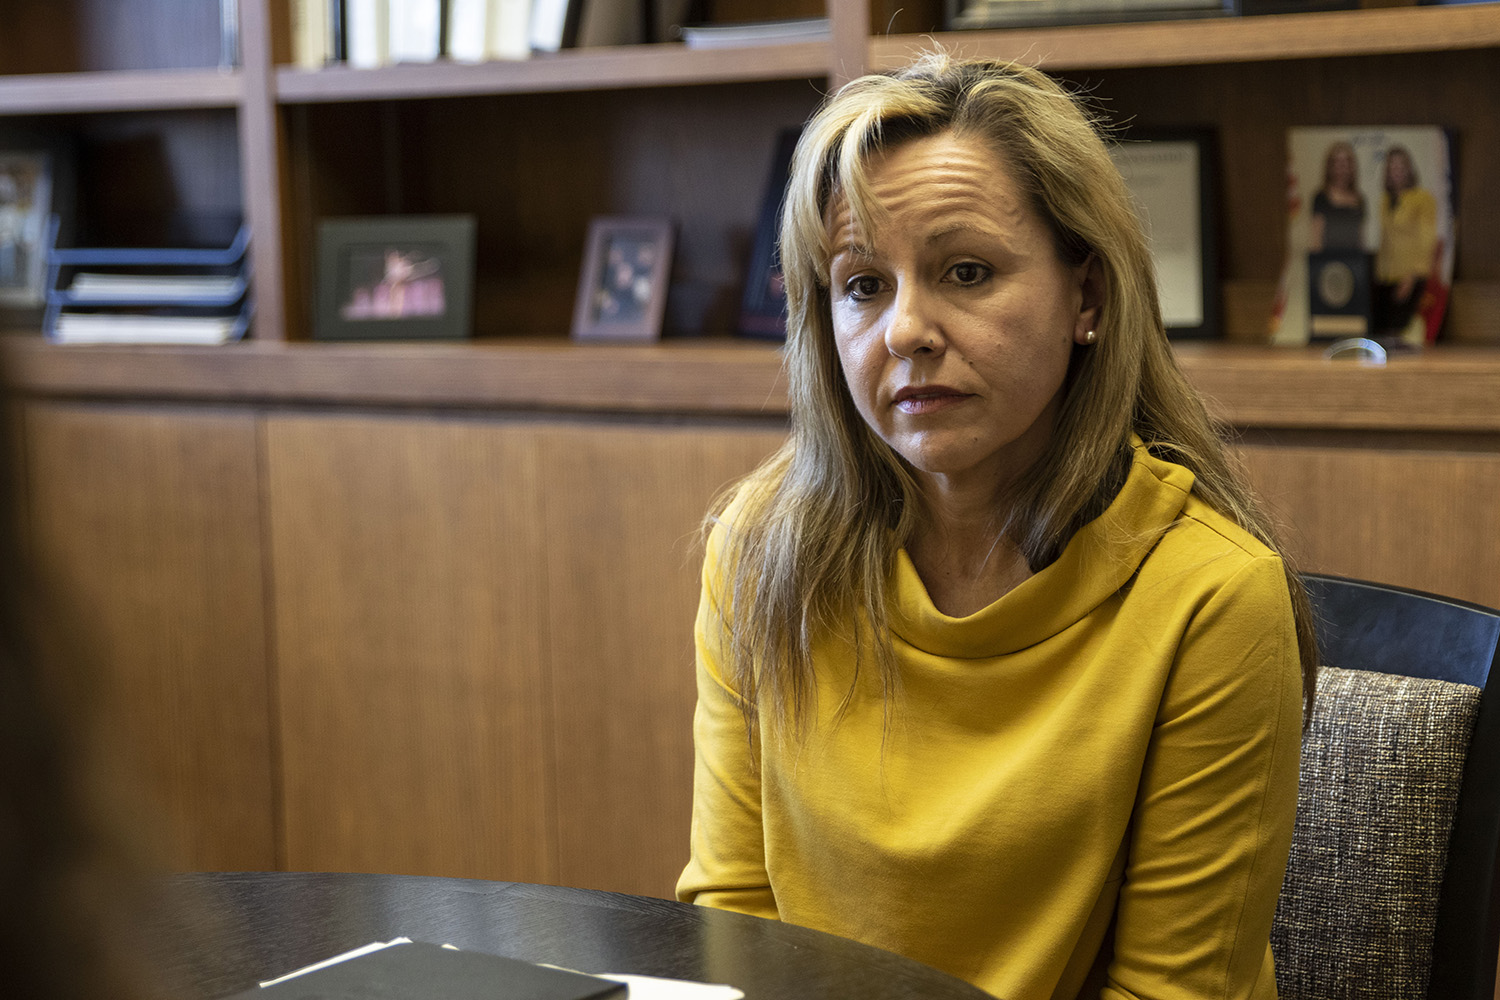 Provost Montse Fuentes speaks in an interview with The Daily Iowan in Jessup Hall on Tuesday, Jan. 21, 2020. Fuentes sat down to discuss new plans to improve support for first-generation students.